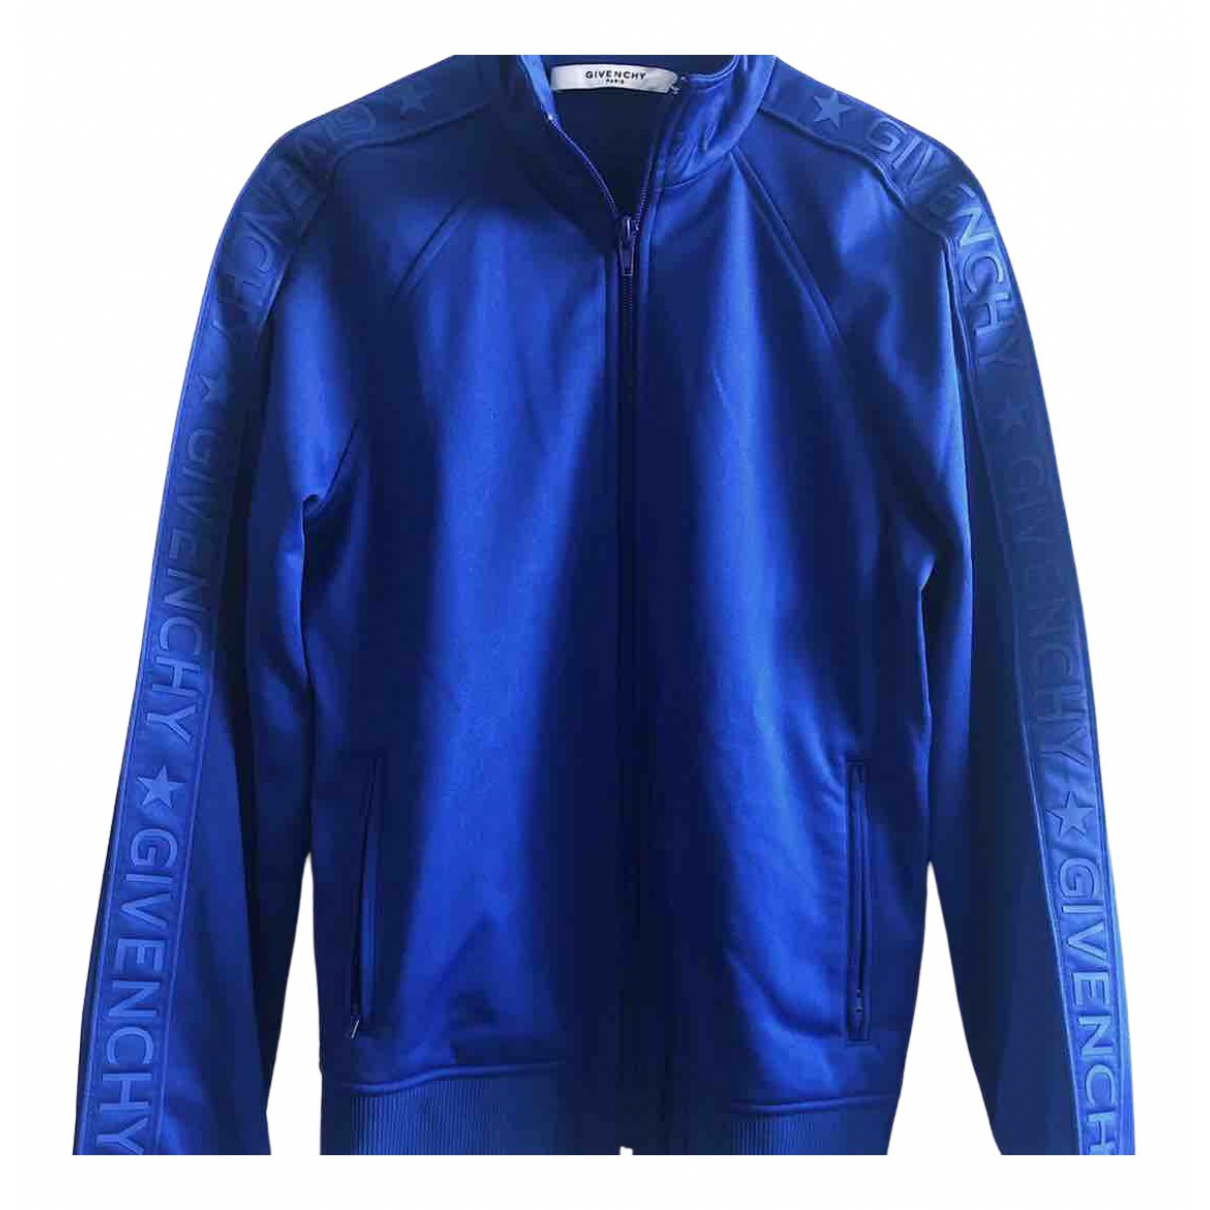 Givenchy N Blue jacket for Women 38 IT